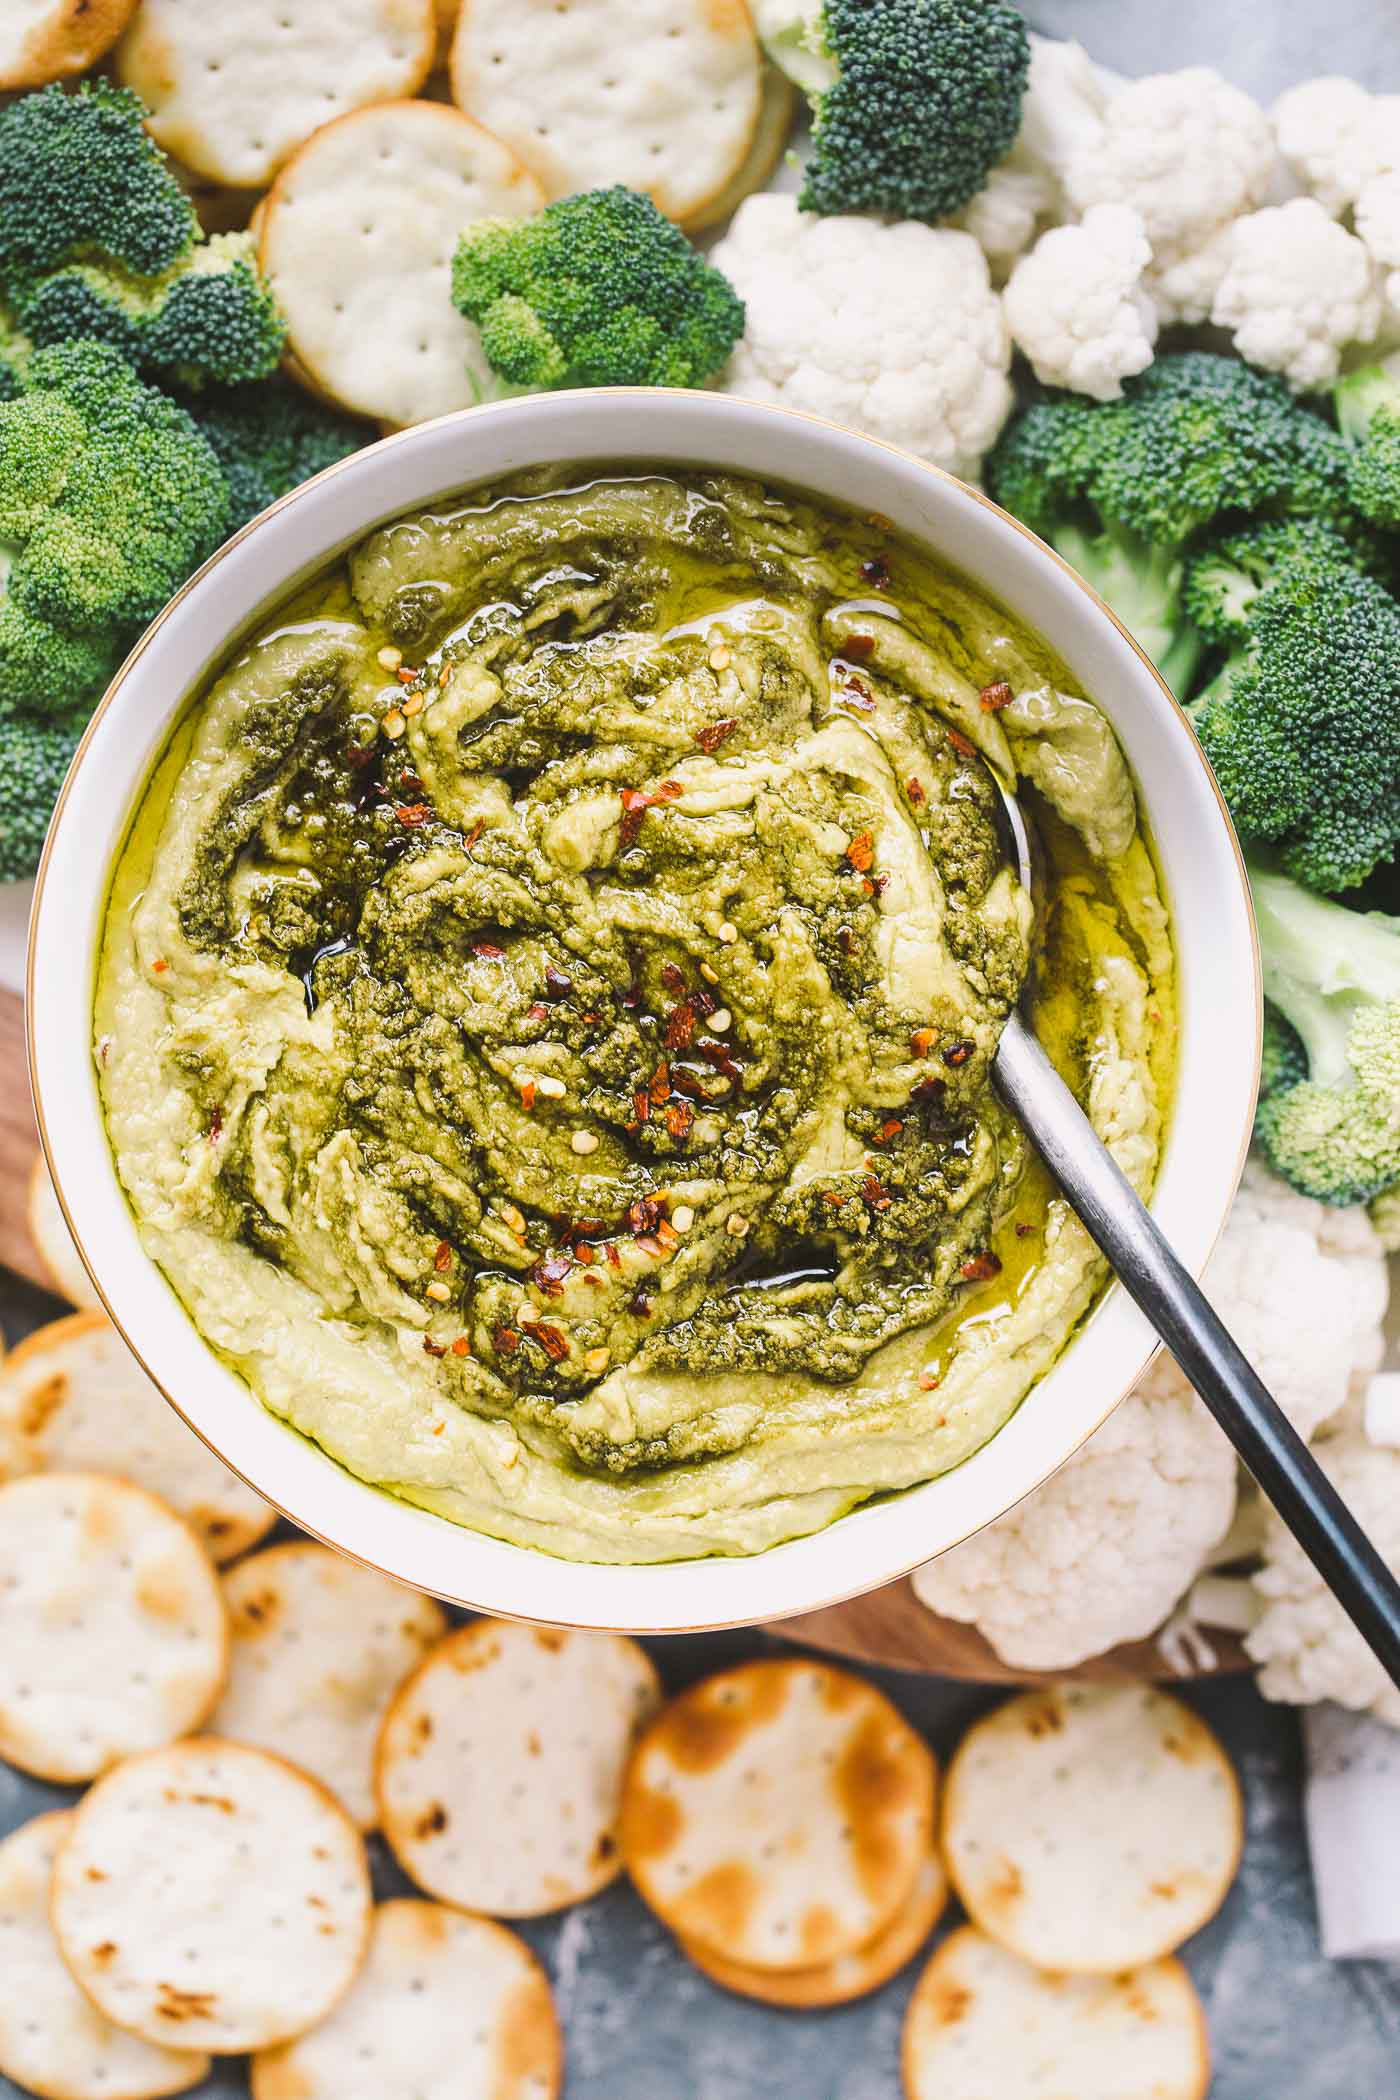 a creamy, dreamy, totally addictive white bean pesto hummus loaded with the bright flavors of pesto & lemon. perfect for healthy end-of-summer snacking!